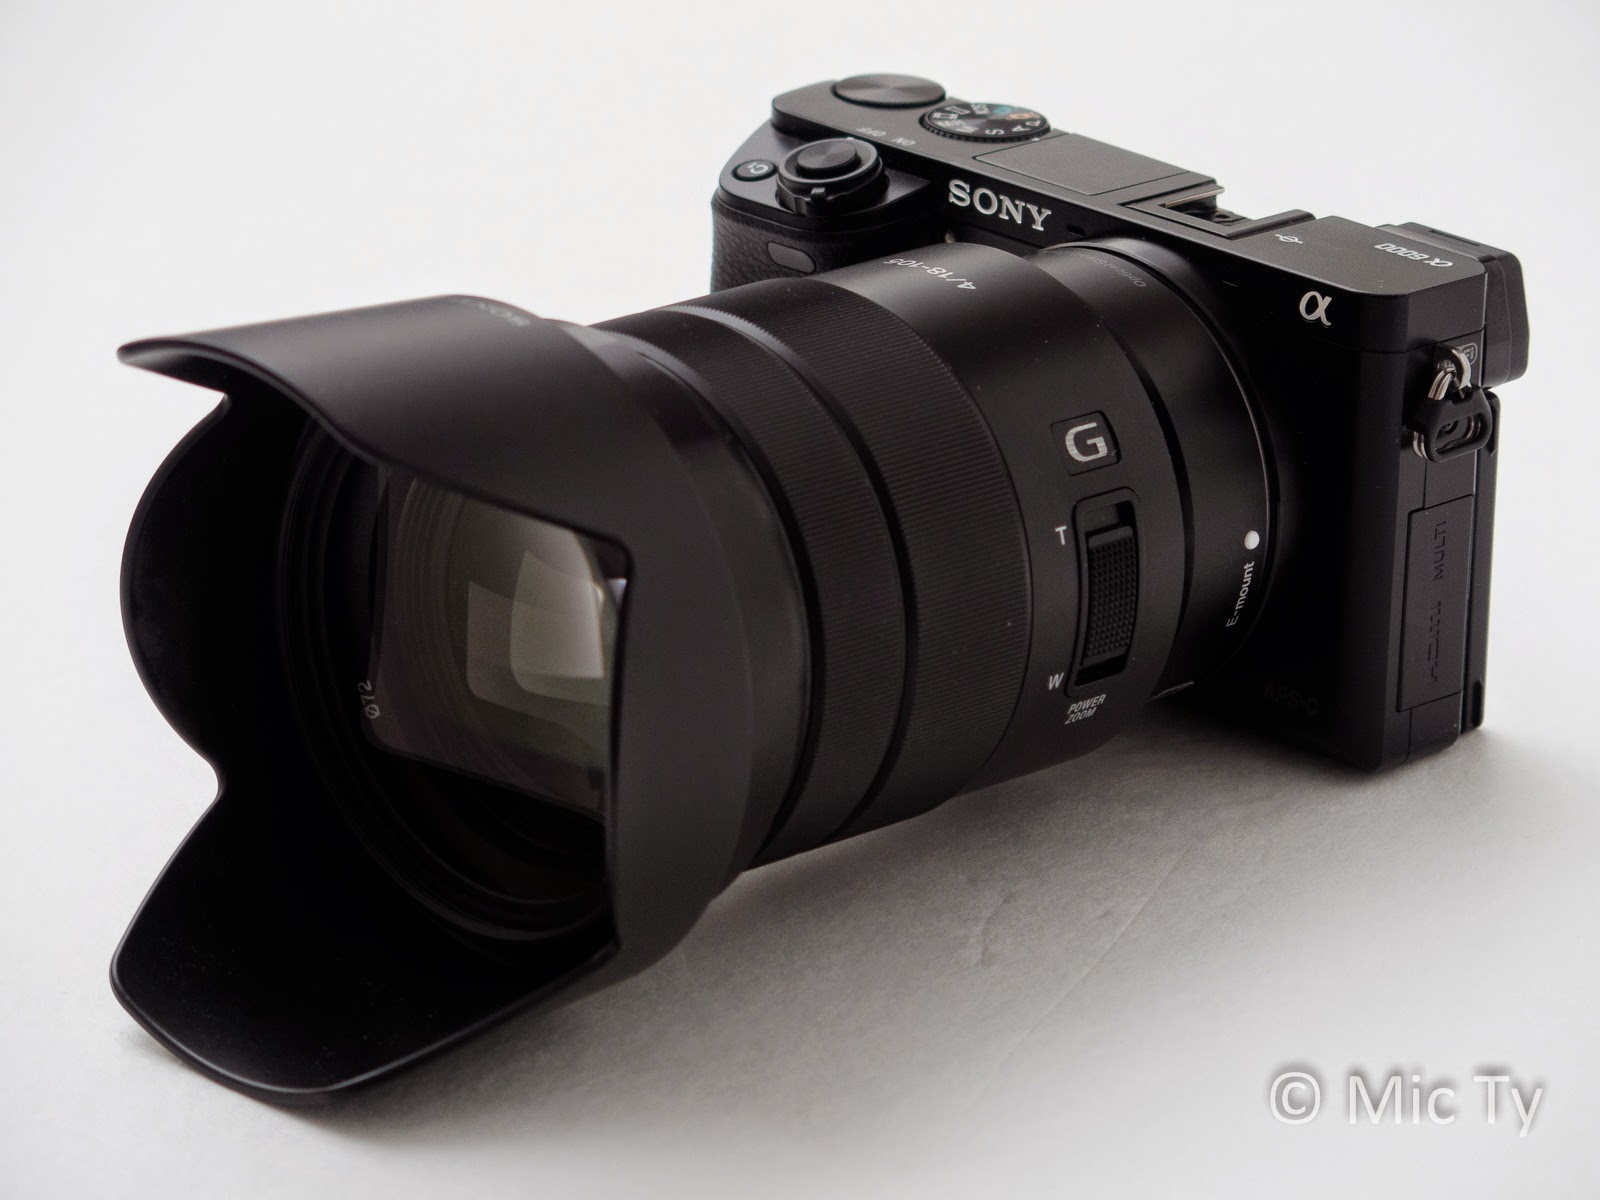 sony 18 105. sony 18-105 f4 g oss review 18 105 a